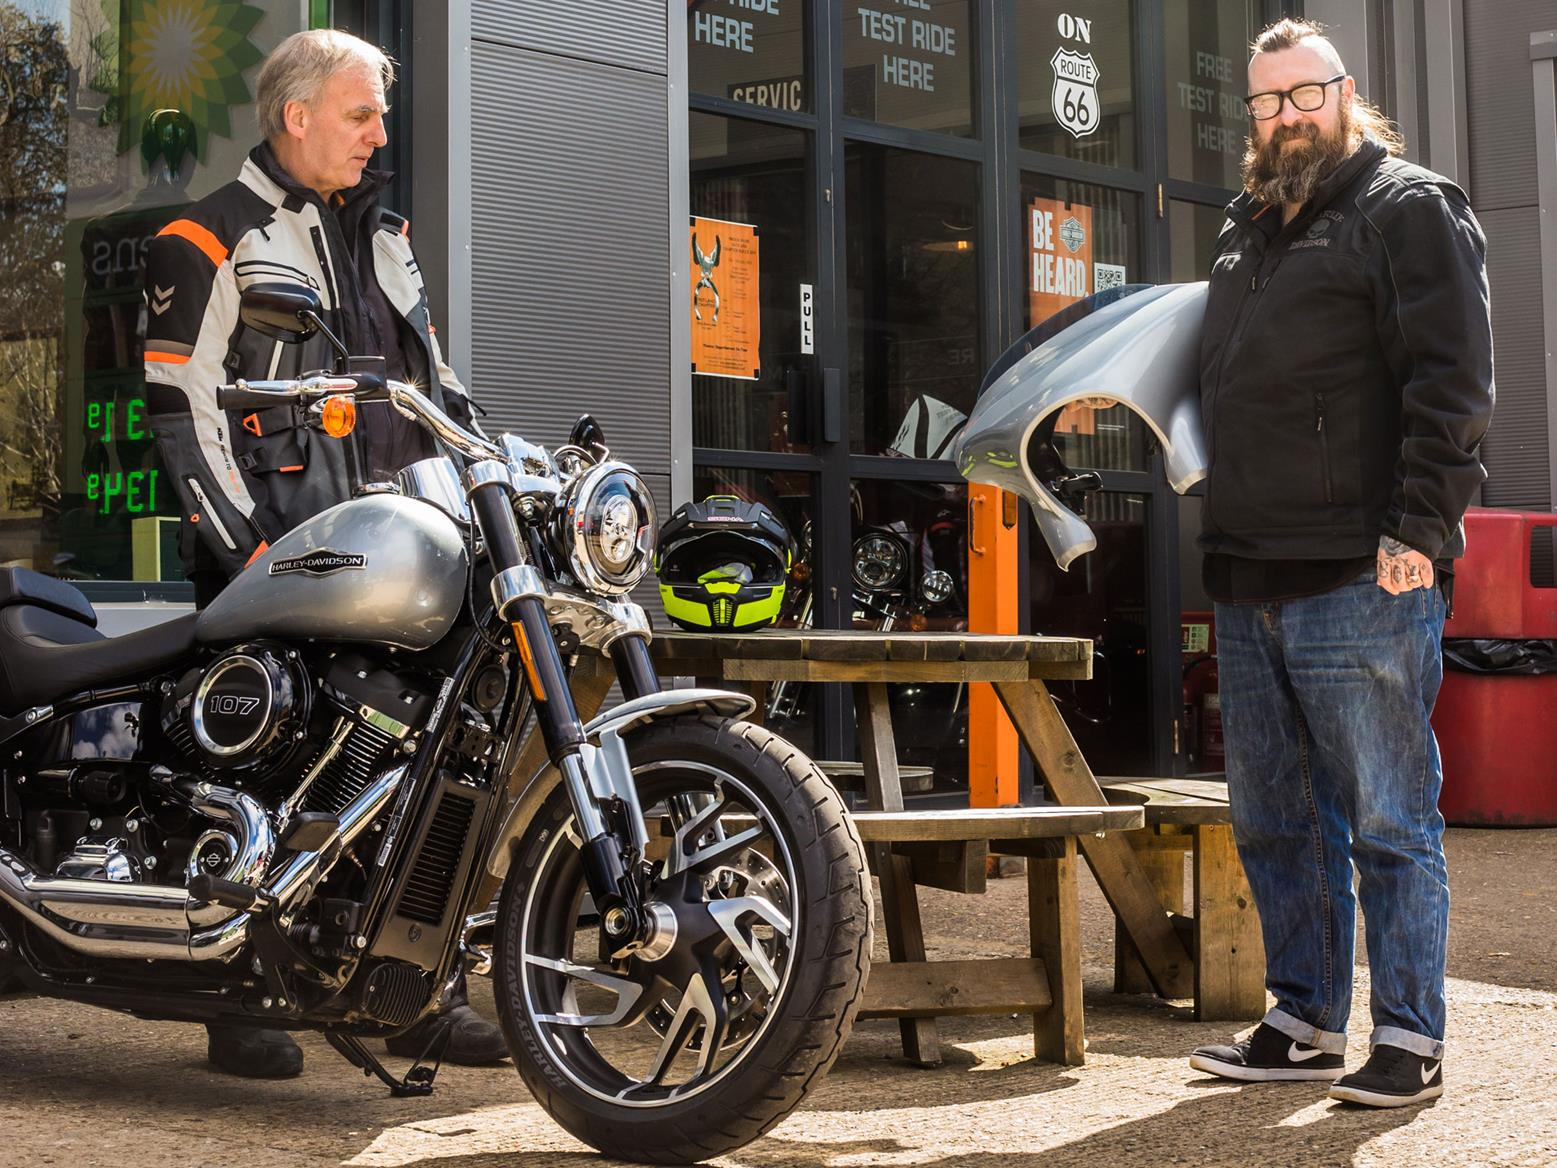 A Harley-Davidson may be a different experience to what you expect